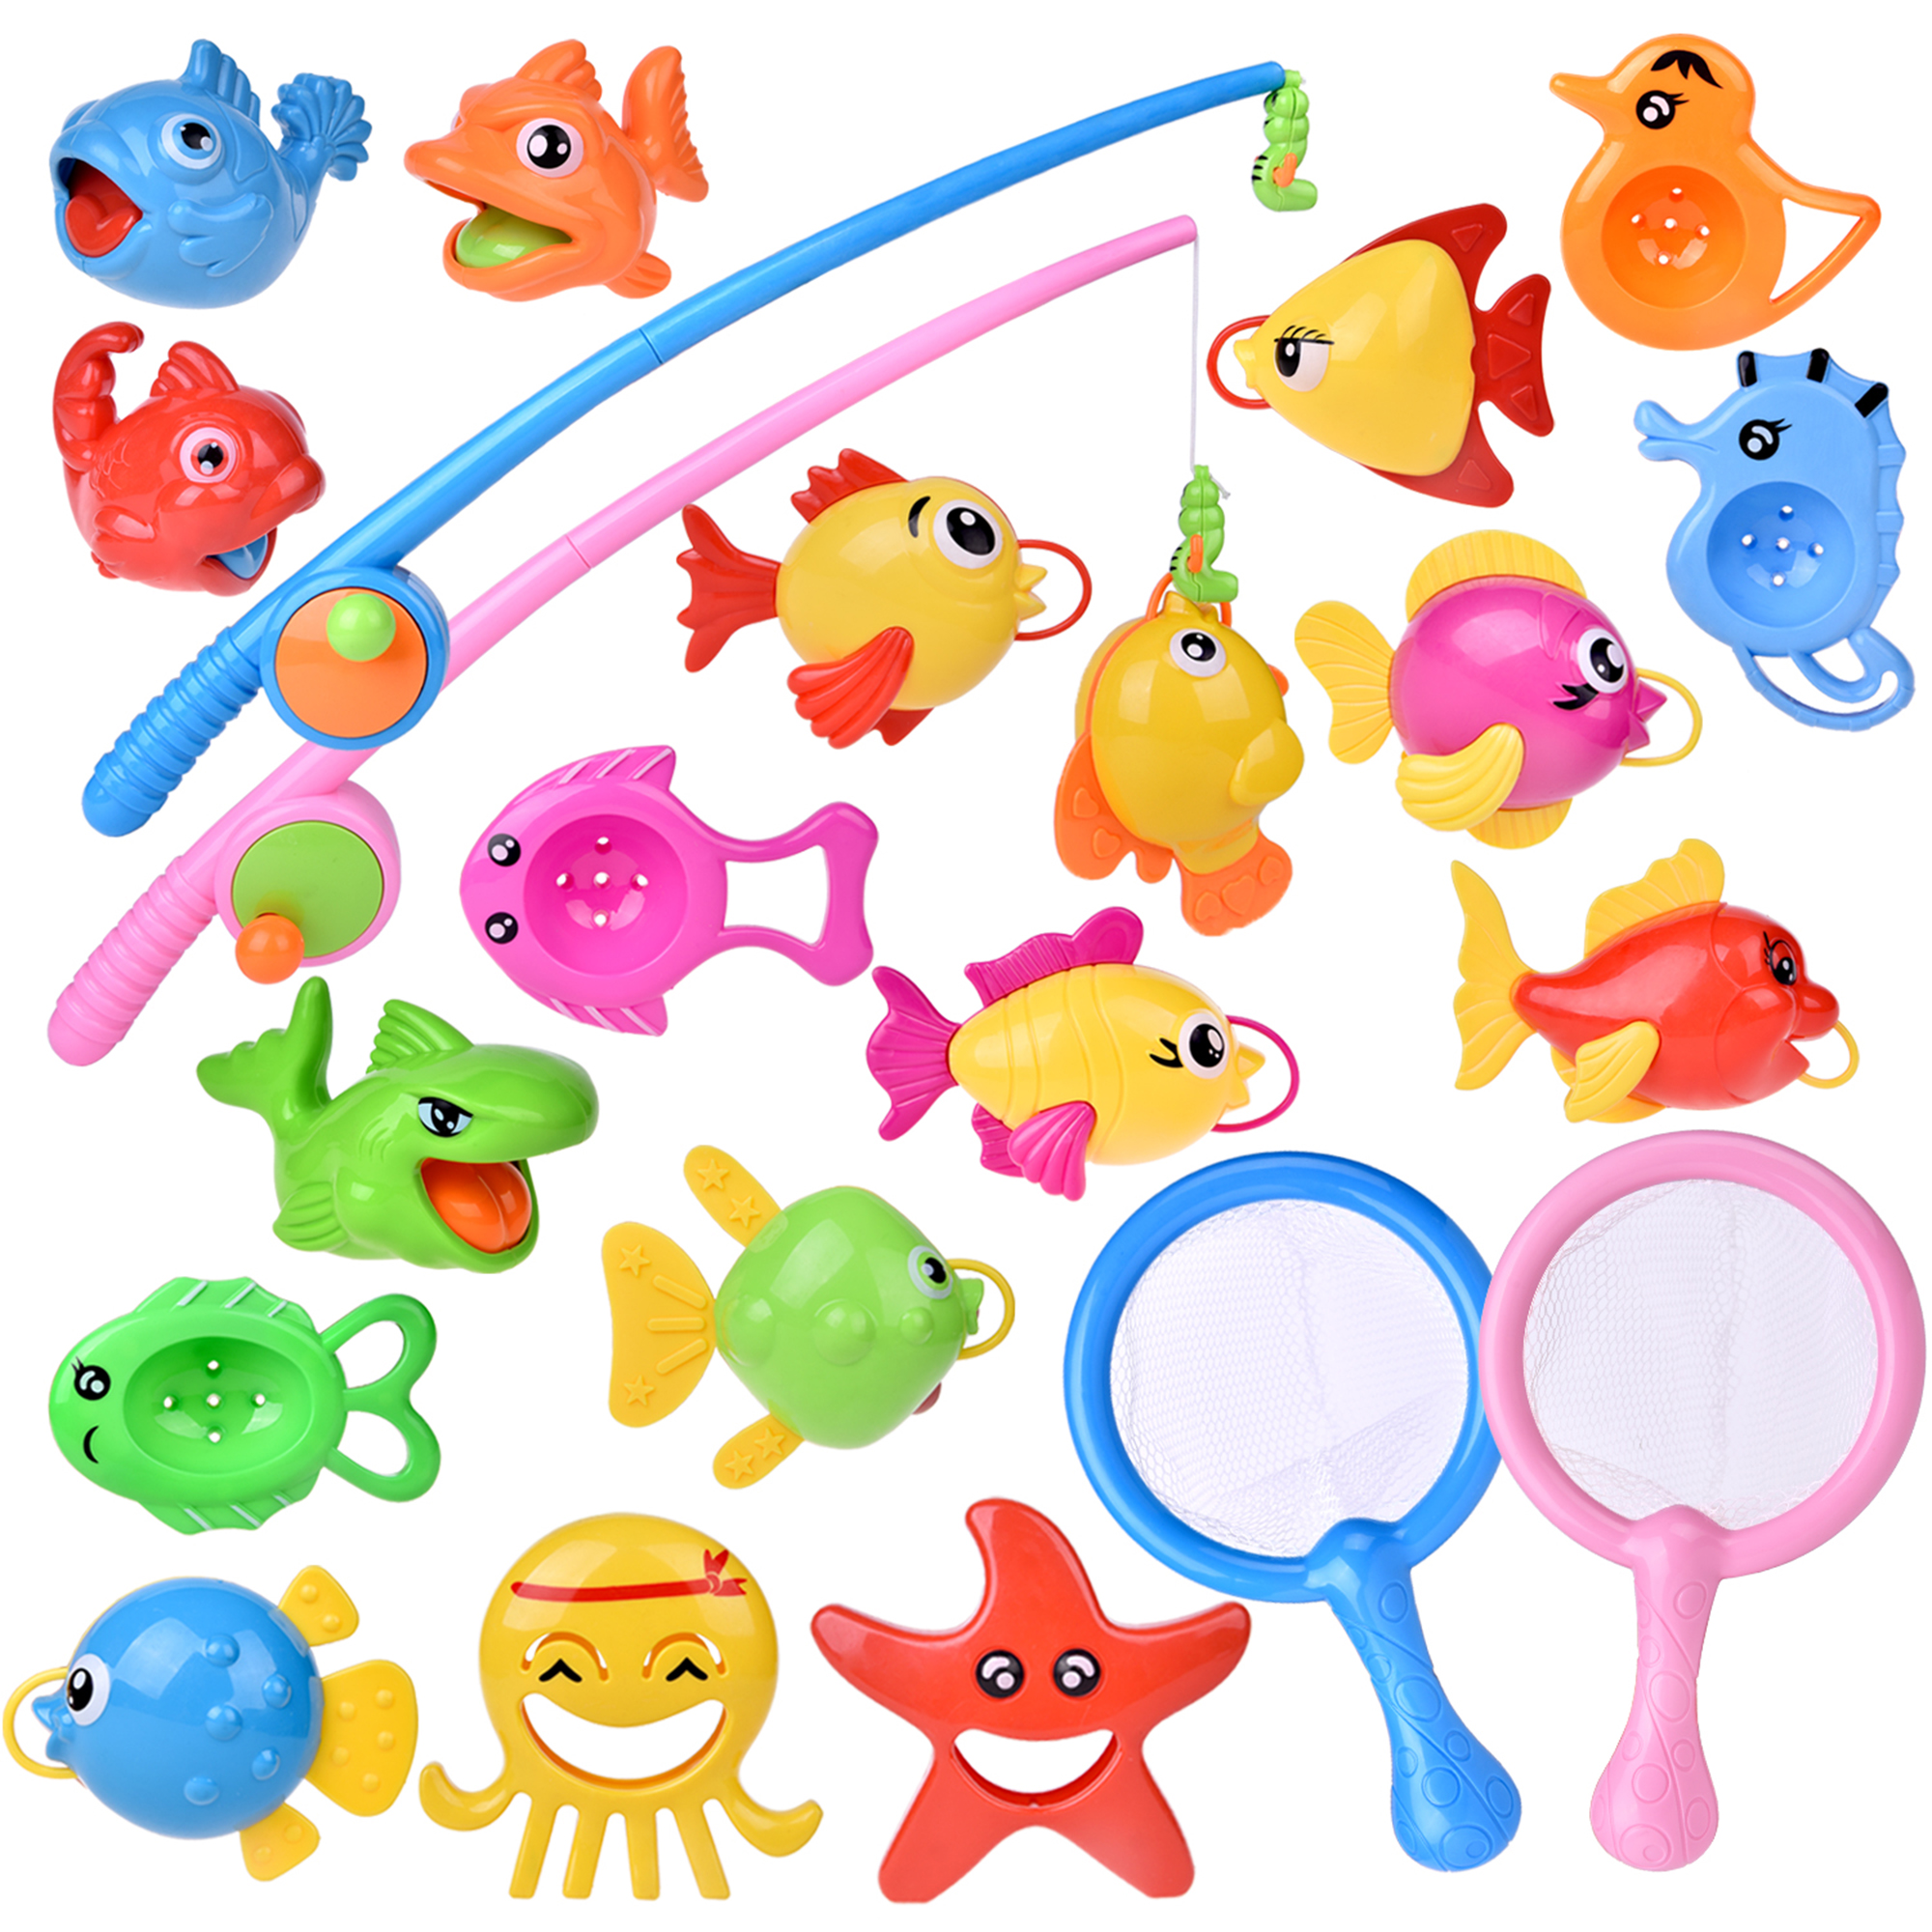 Fishing Bath Toys for Toddler and Baby with Fishing Rod ,Fishing Net 22PCs F-201